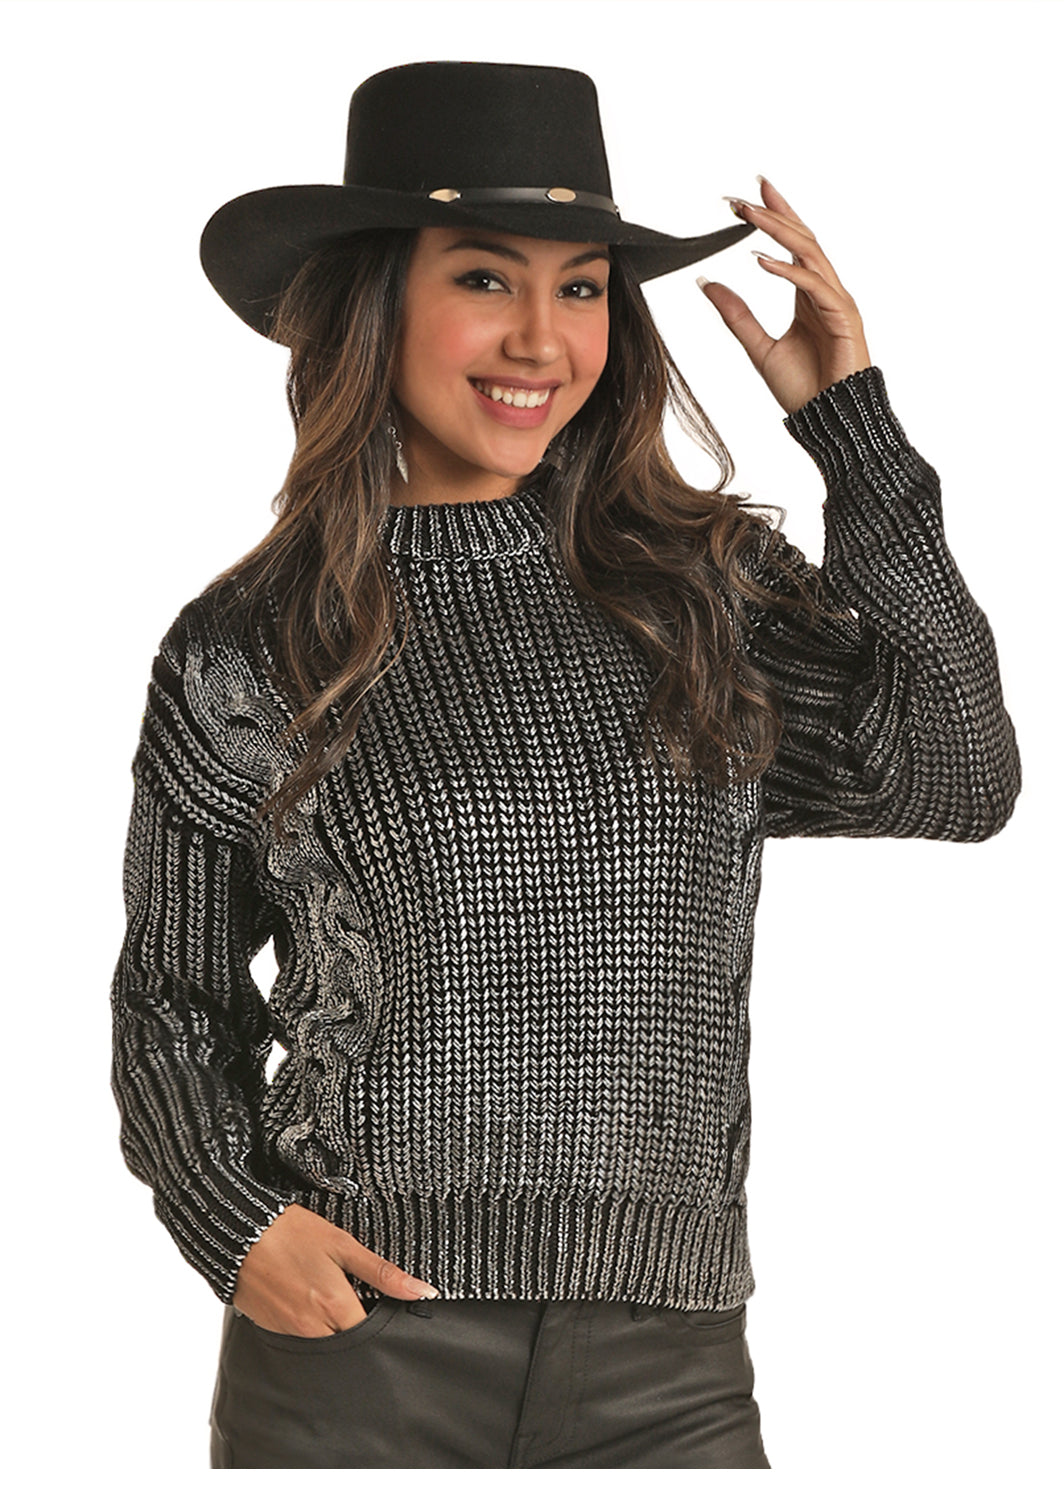 Rock N Roll Cowgirl Women's Cowgirl Cable Knit Sweater - Black Silver Metallic